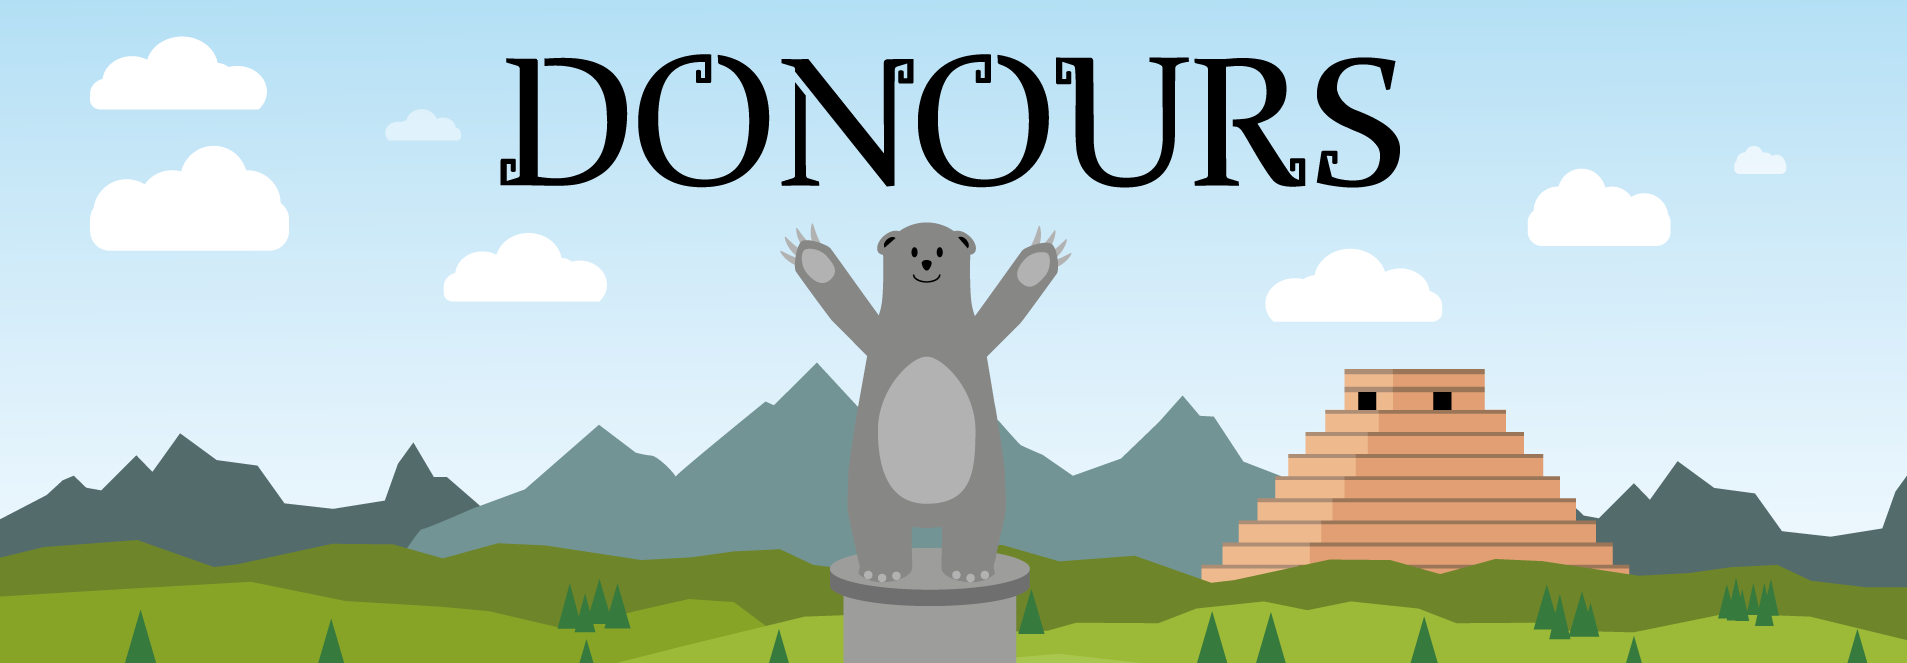 Donours